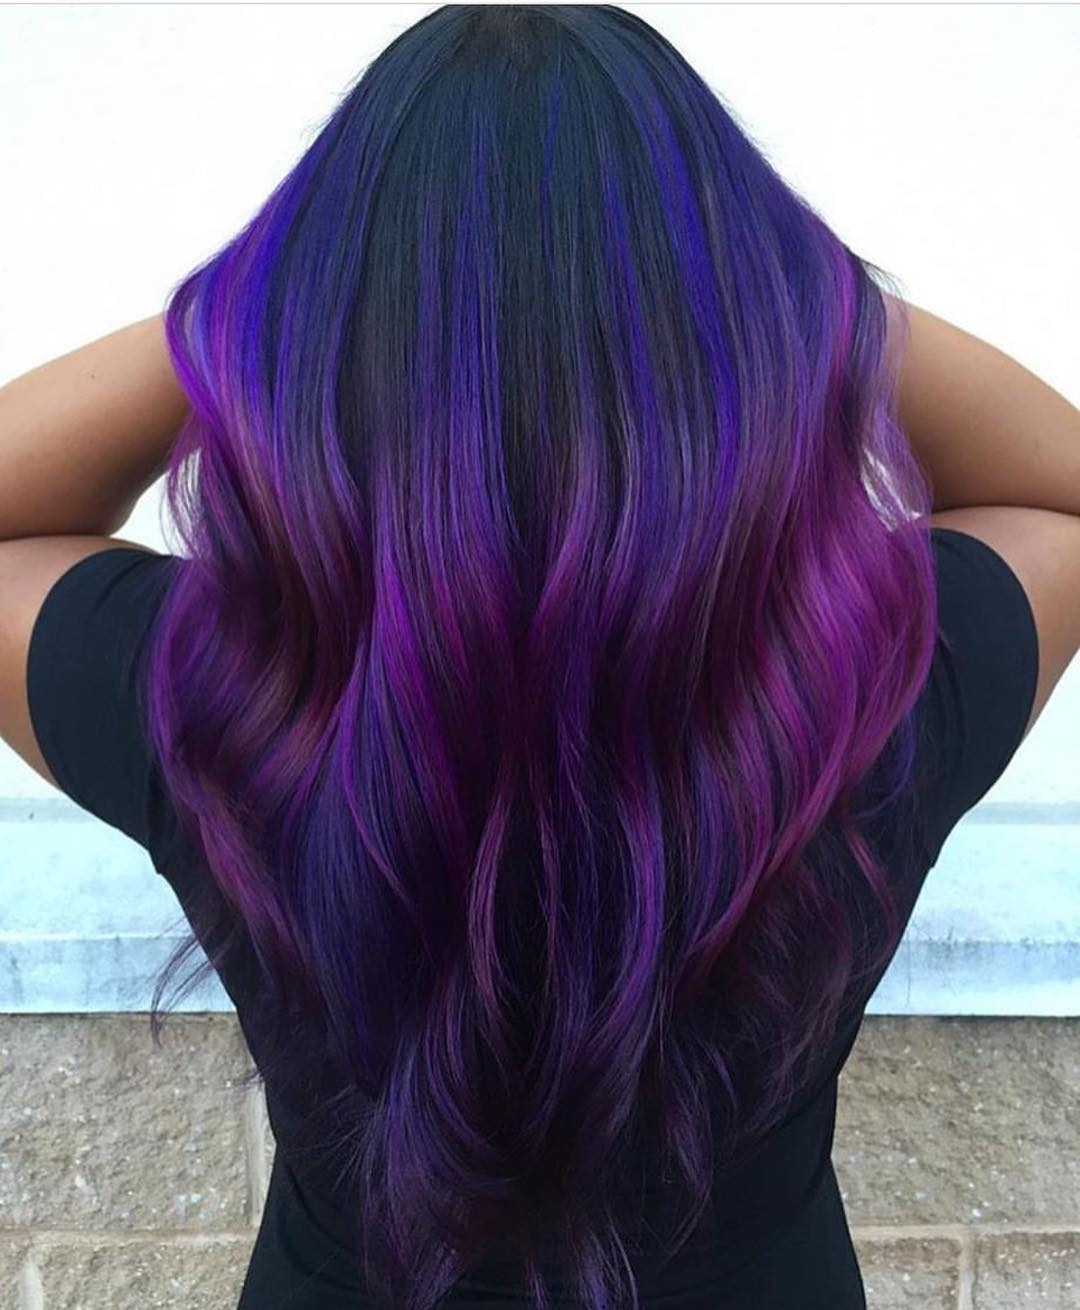 Lila Blaue Haare 50 Stylish Dark Purple Hair Color Ideas Destined To